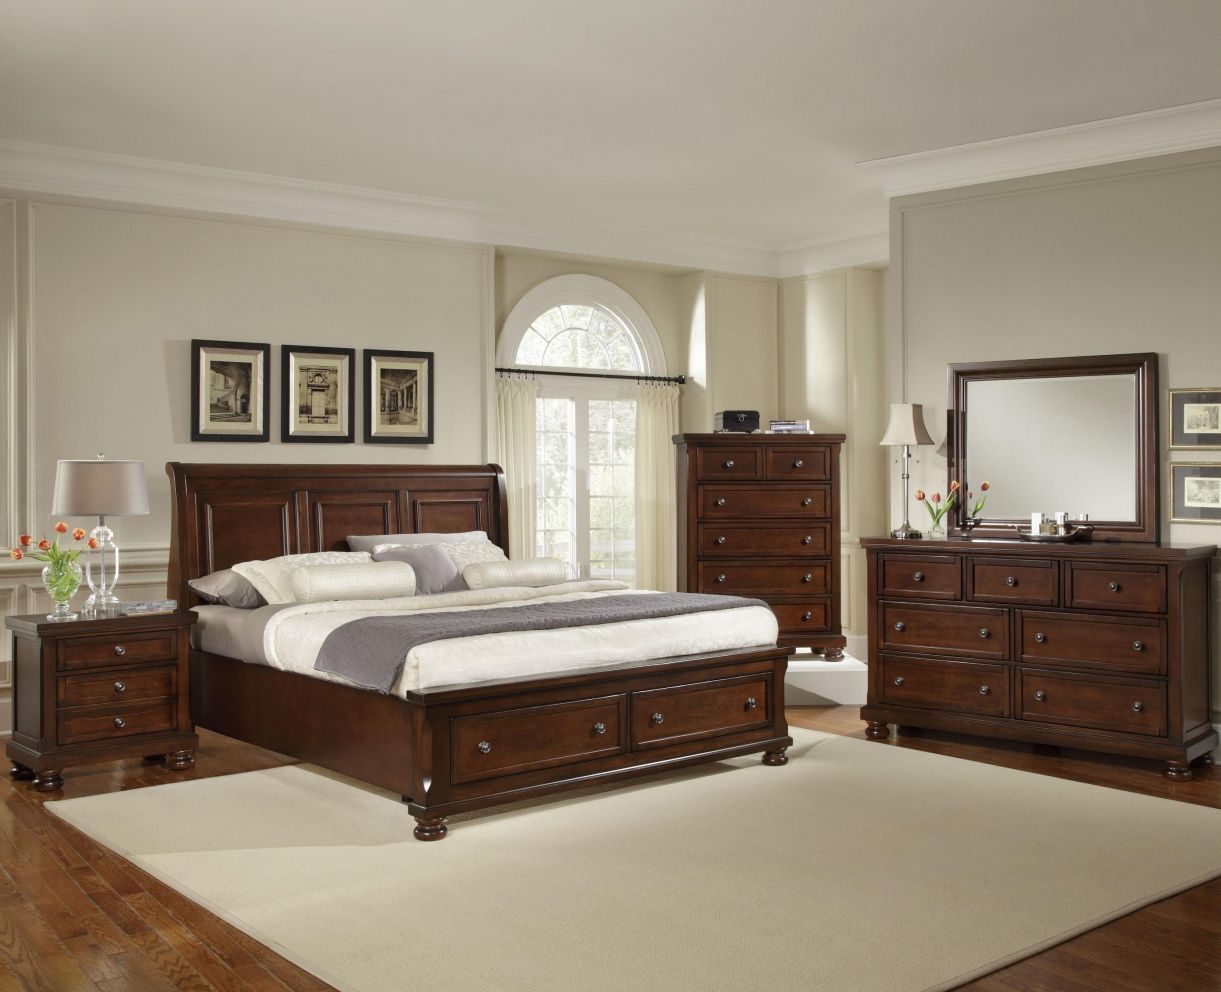 is will with bassett sets dream bedroom crafted for furniture be true king sale come vaughan a vintage well set cool